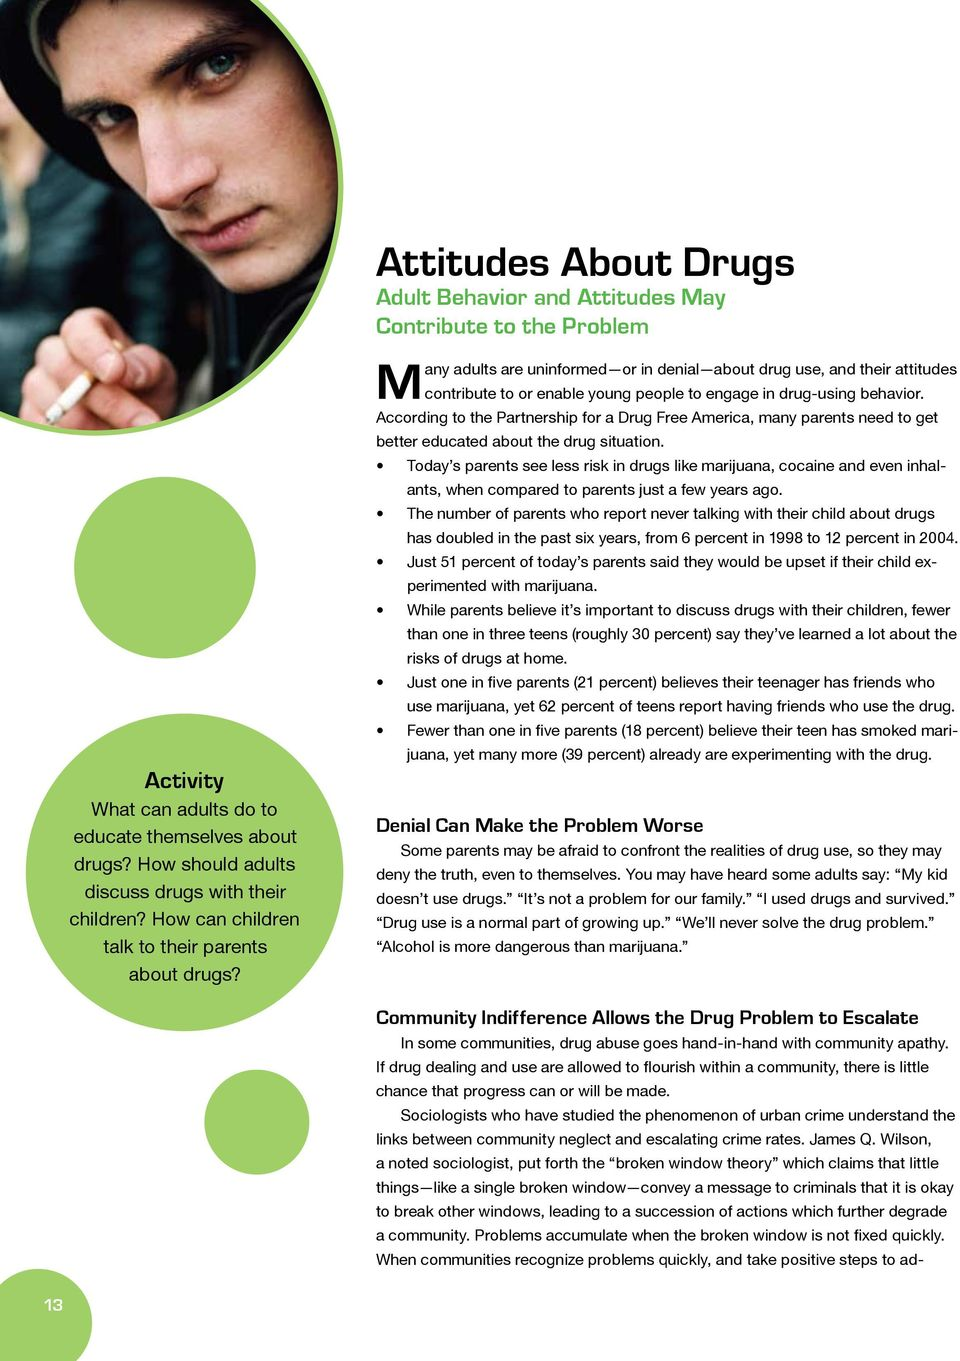 engage in drug-using behavior. According to the Partnership for a Drug Free America, many parents need to get better educated about the drug situation.